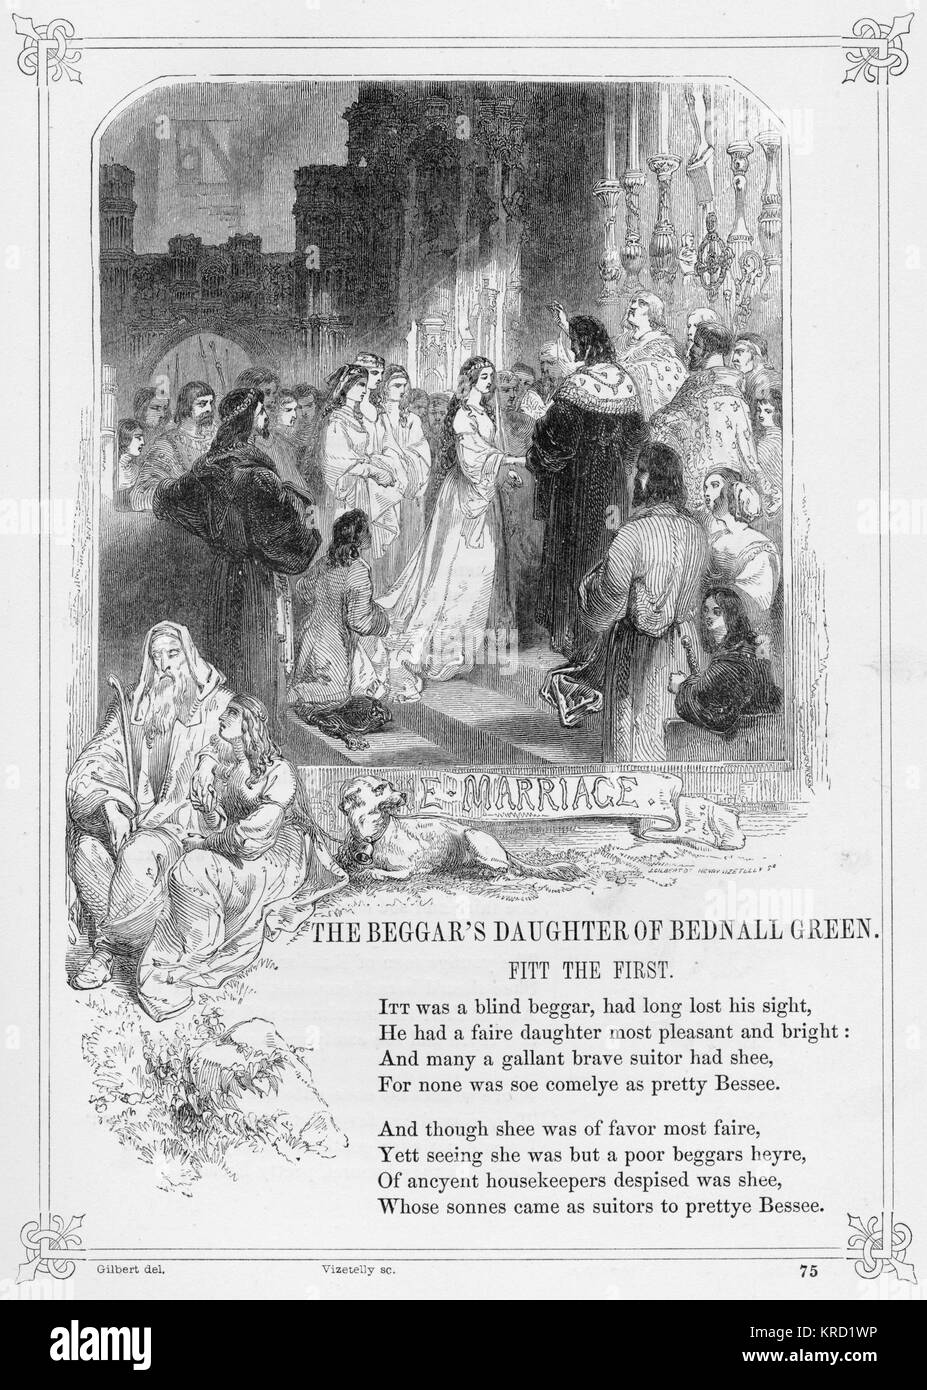 THE (BLIND) BEGGARS DAUGHTER OF BEDNAL GREEN (BETHNAL GREEN)  Popular British Ballad, obtained and expanded by Thomas - Stock Image